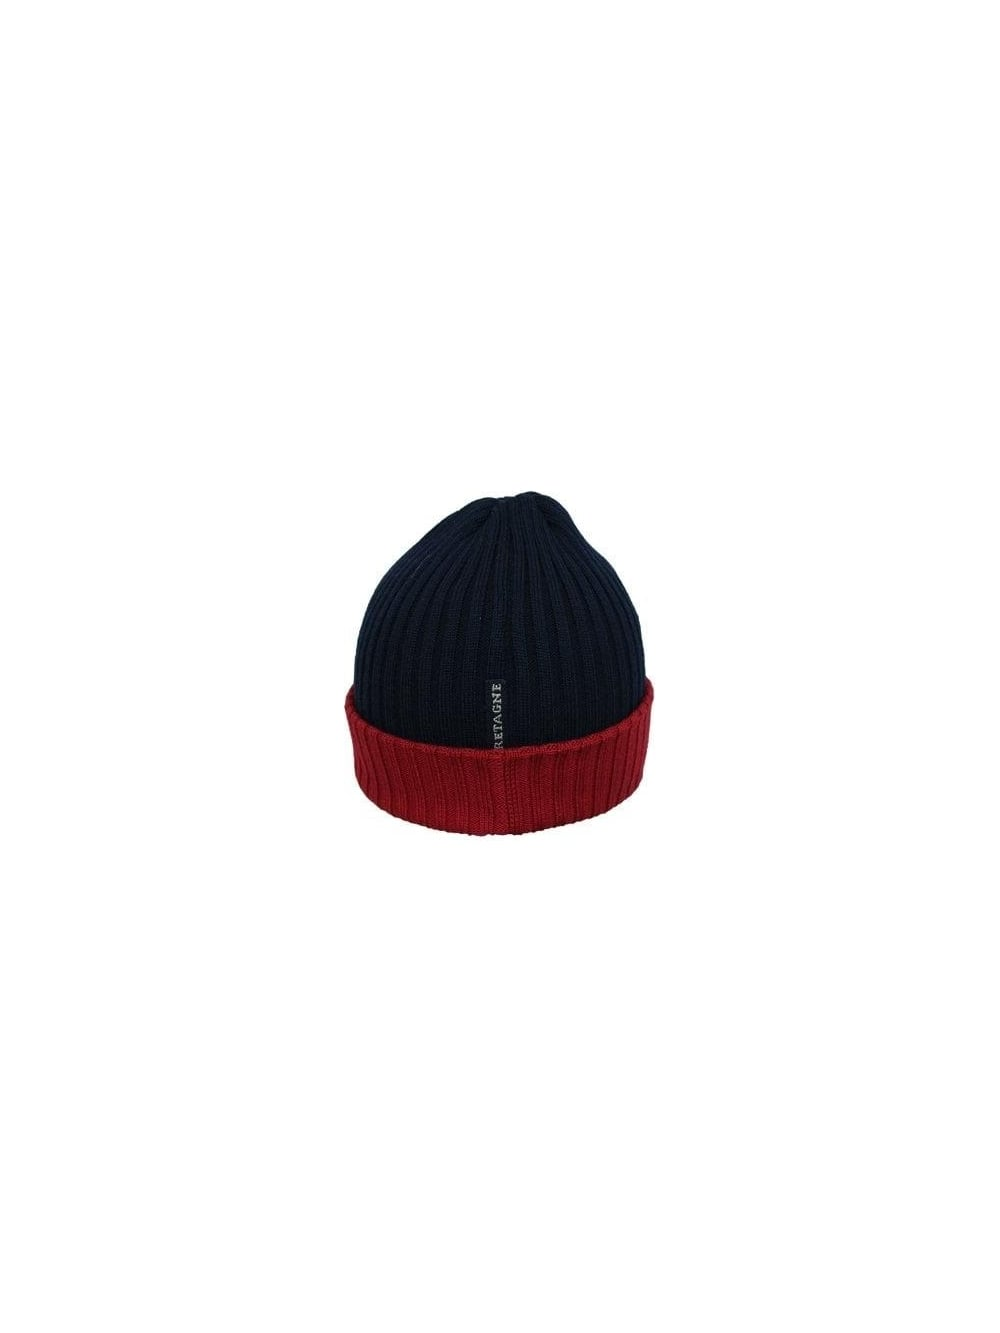 Paul   Shark Contrast Ribbed Beanie Hat in NAvy Red - Northern Threads 5e048547c4f1